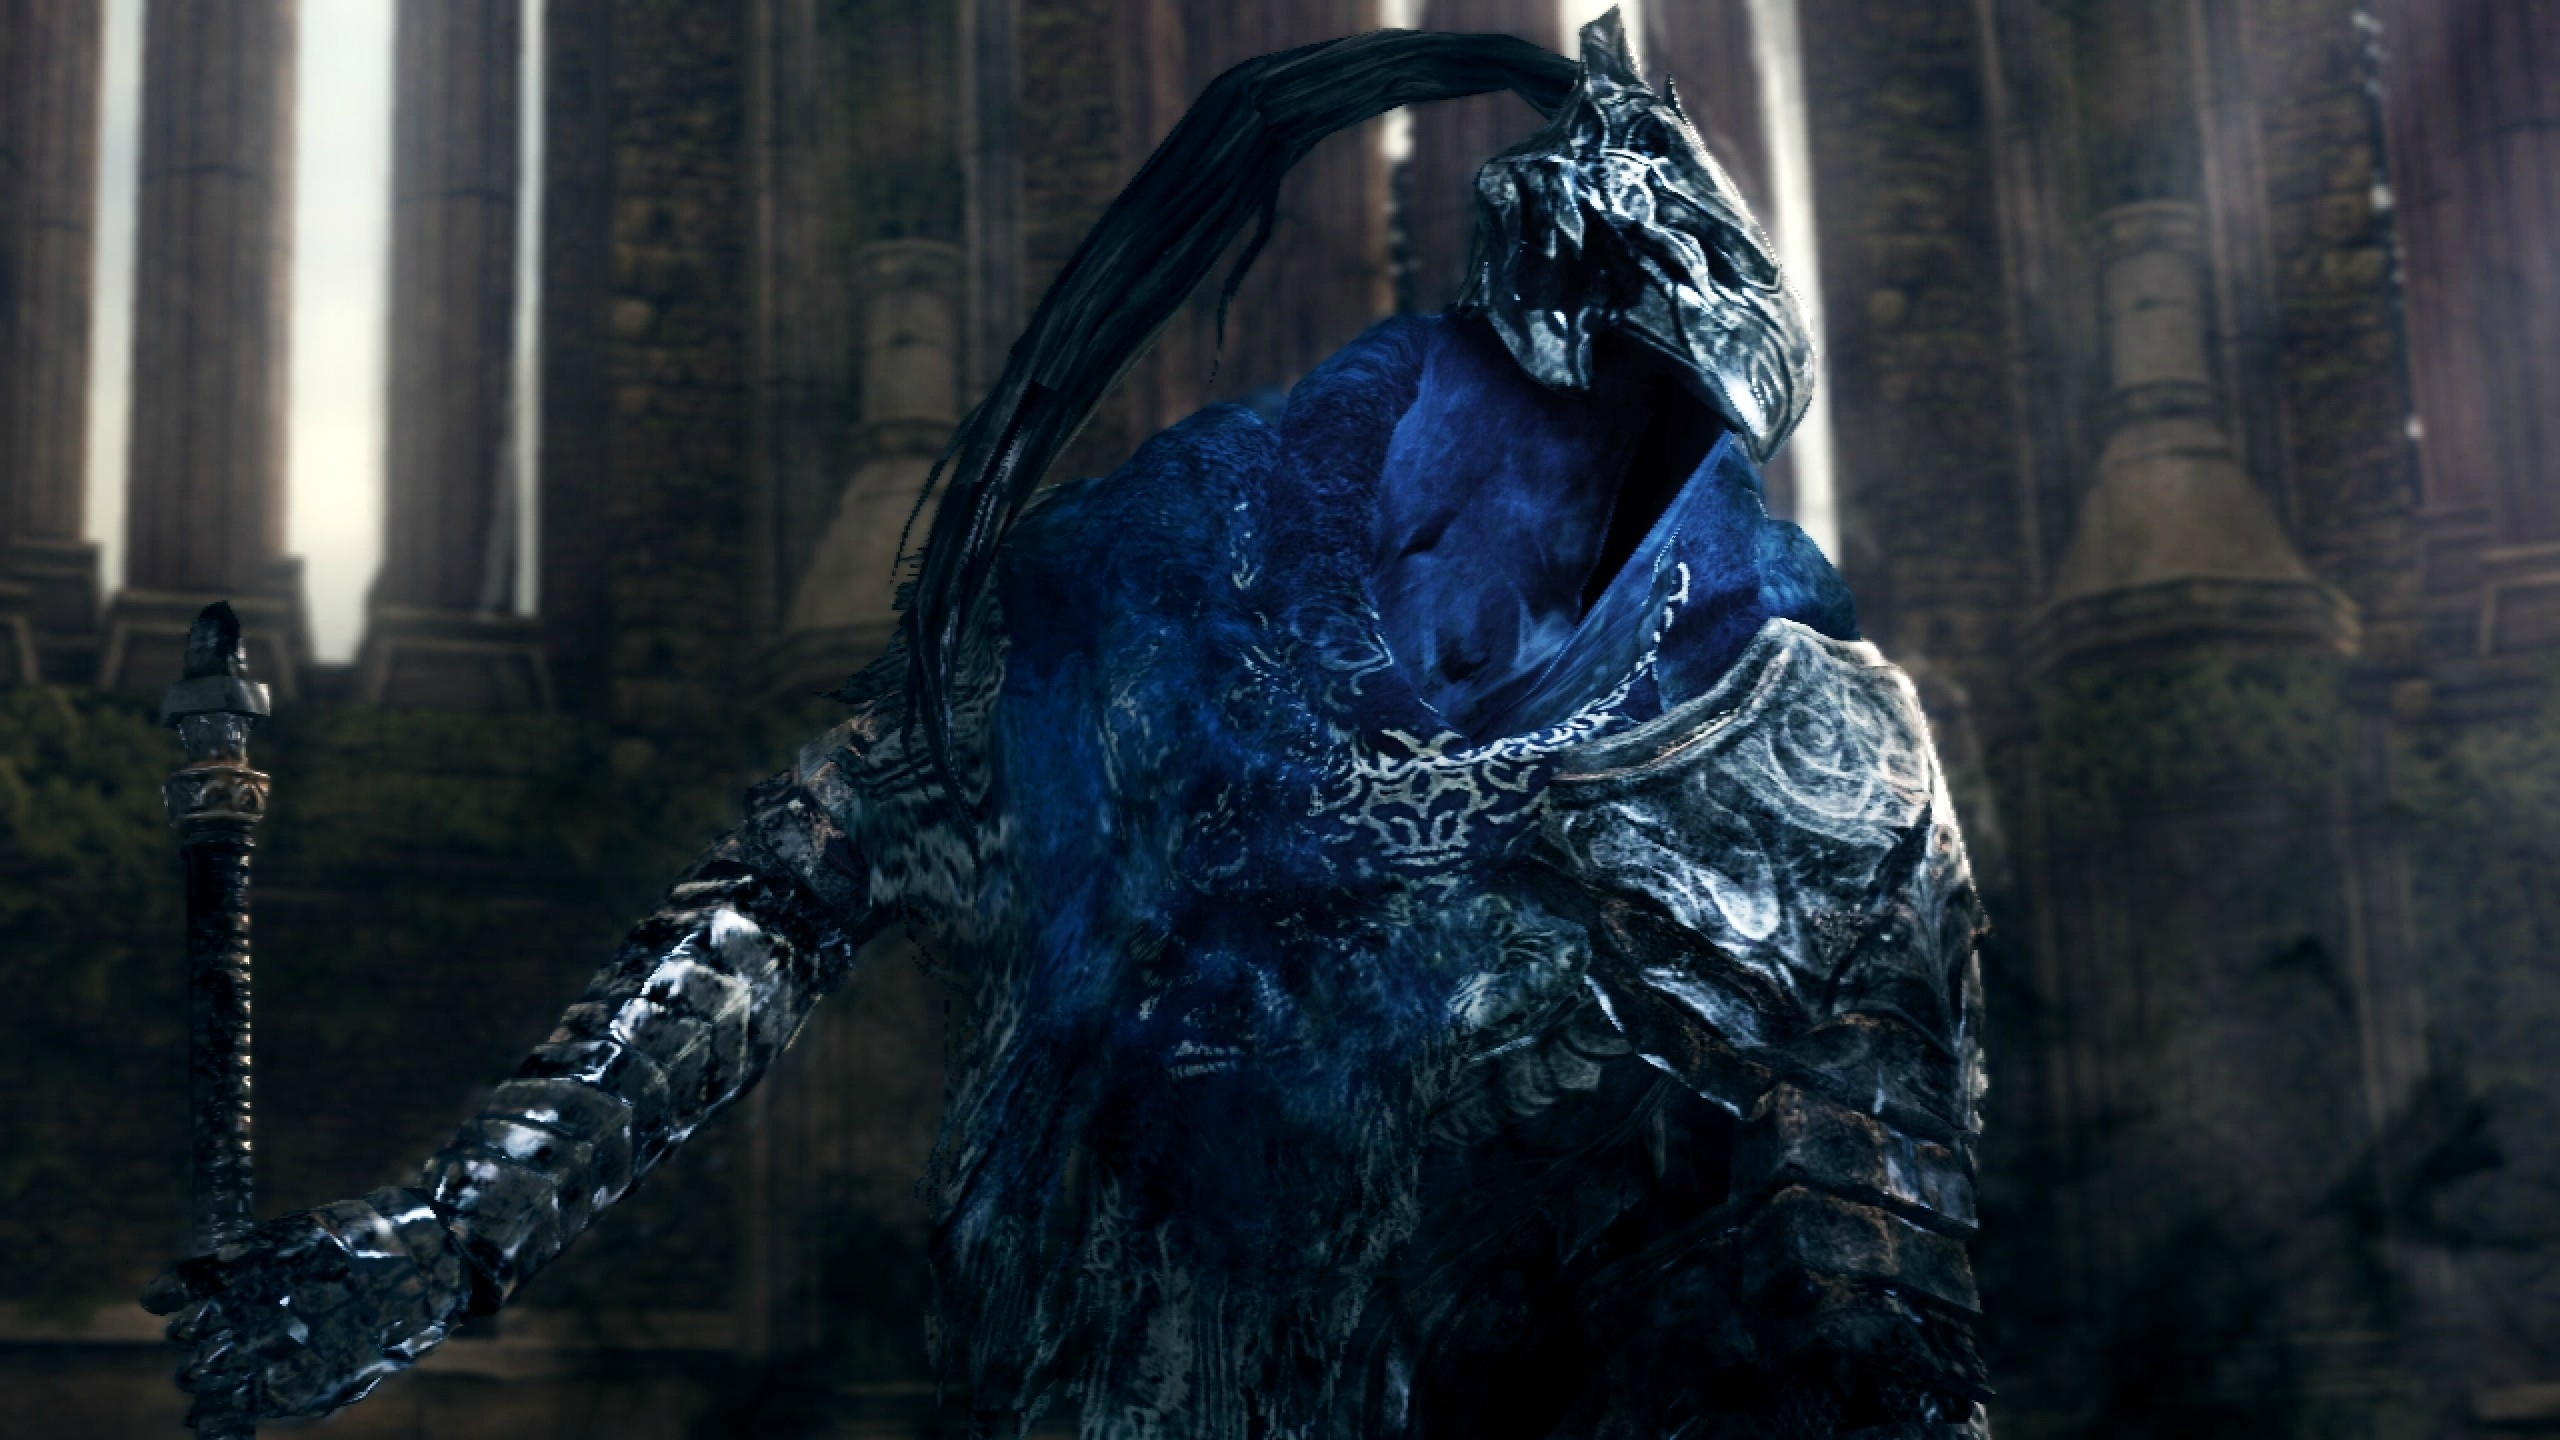 dark souls (video game) images dark souls | artorias of the abyss hd